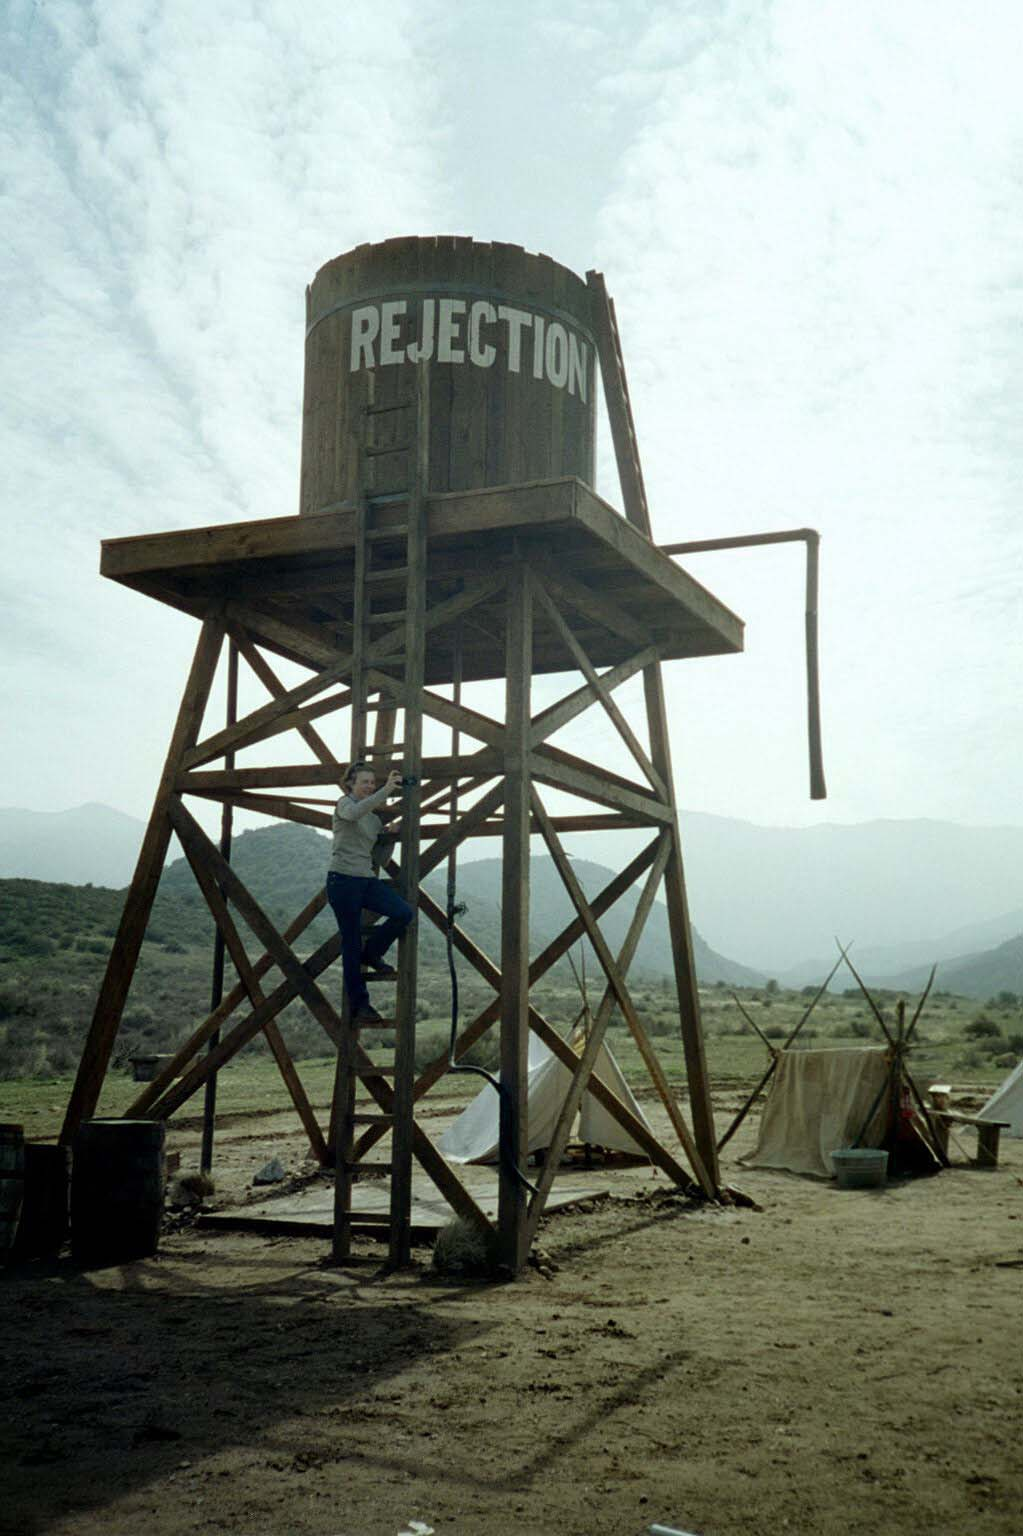 Rejection Water Tower